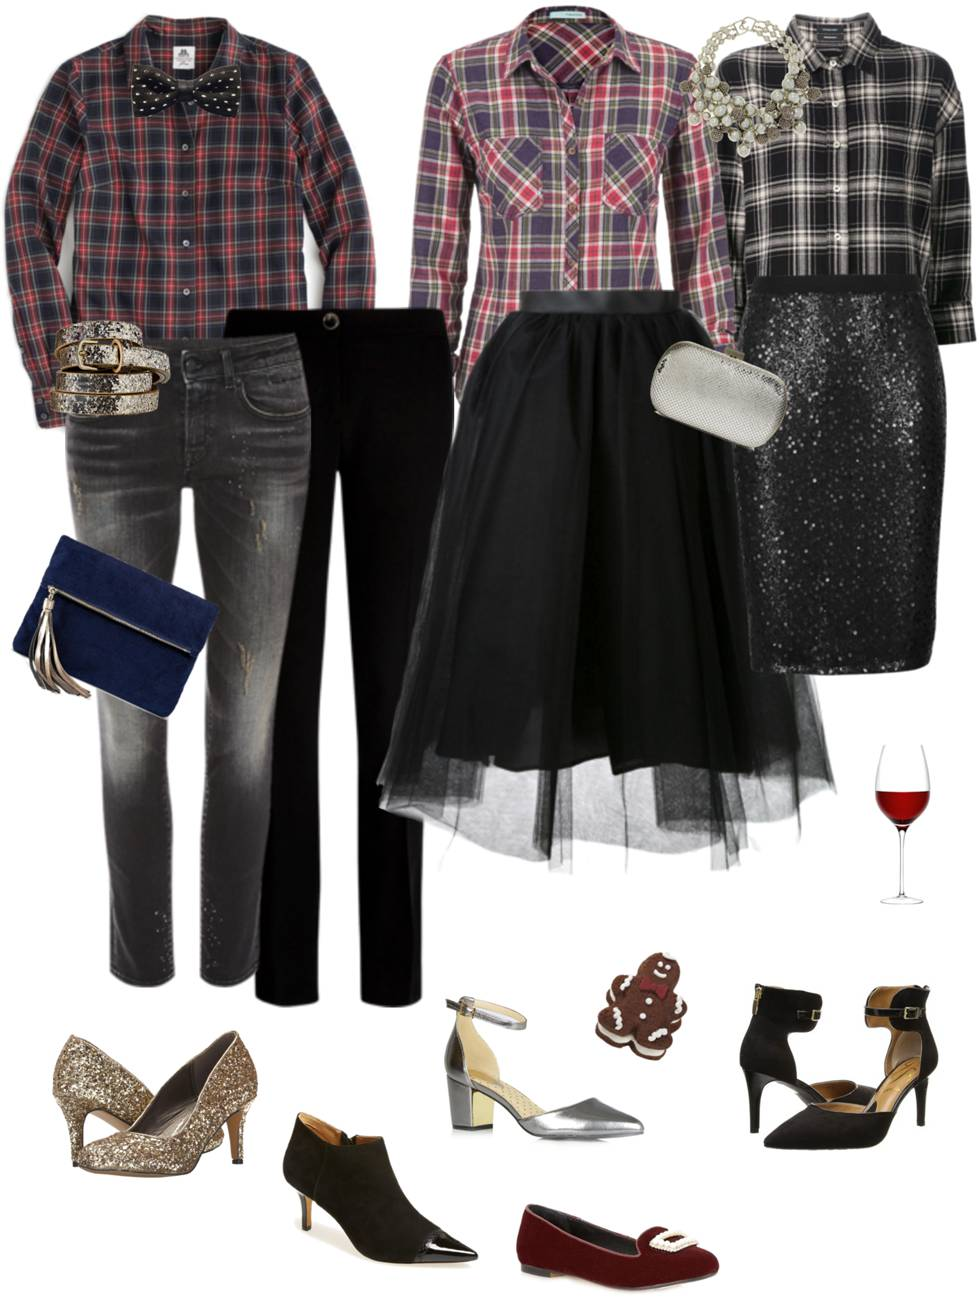 Holiday Ensemble: Party Plaid